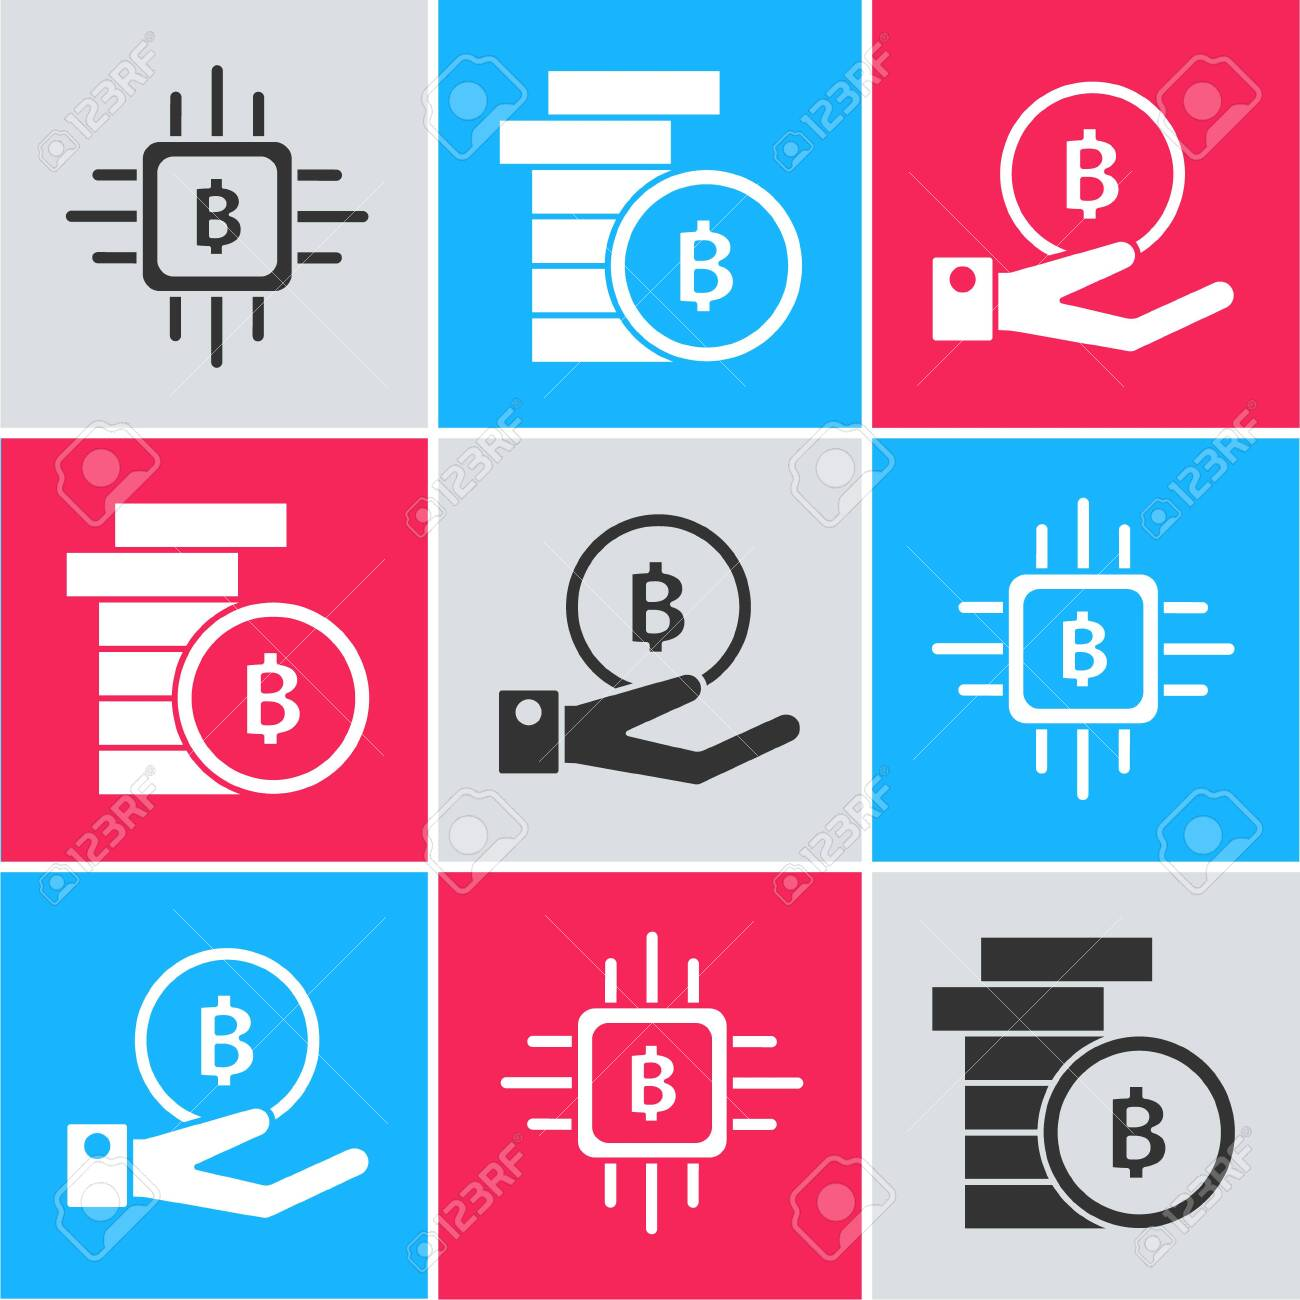 cryptocurrencies that can be cpu mined